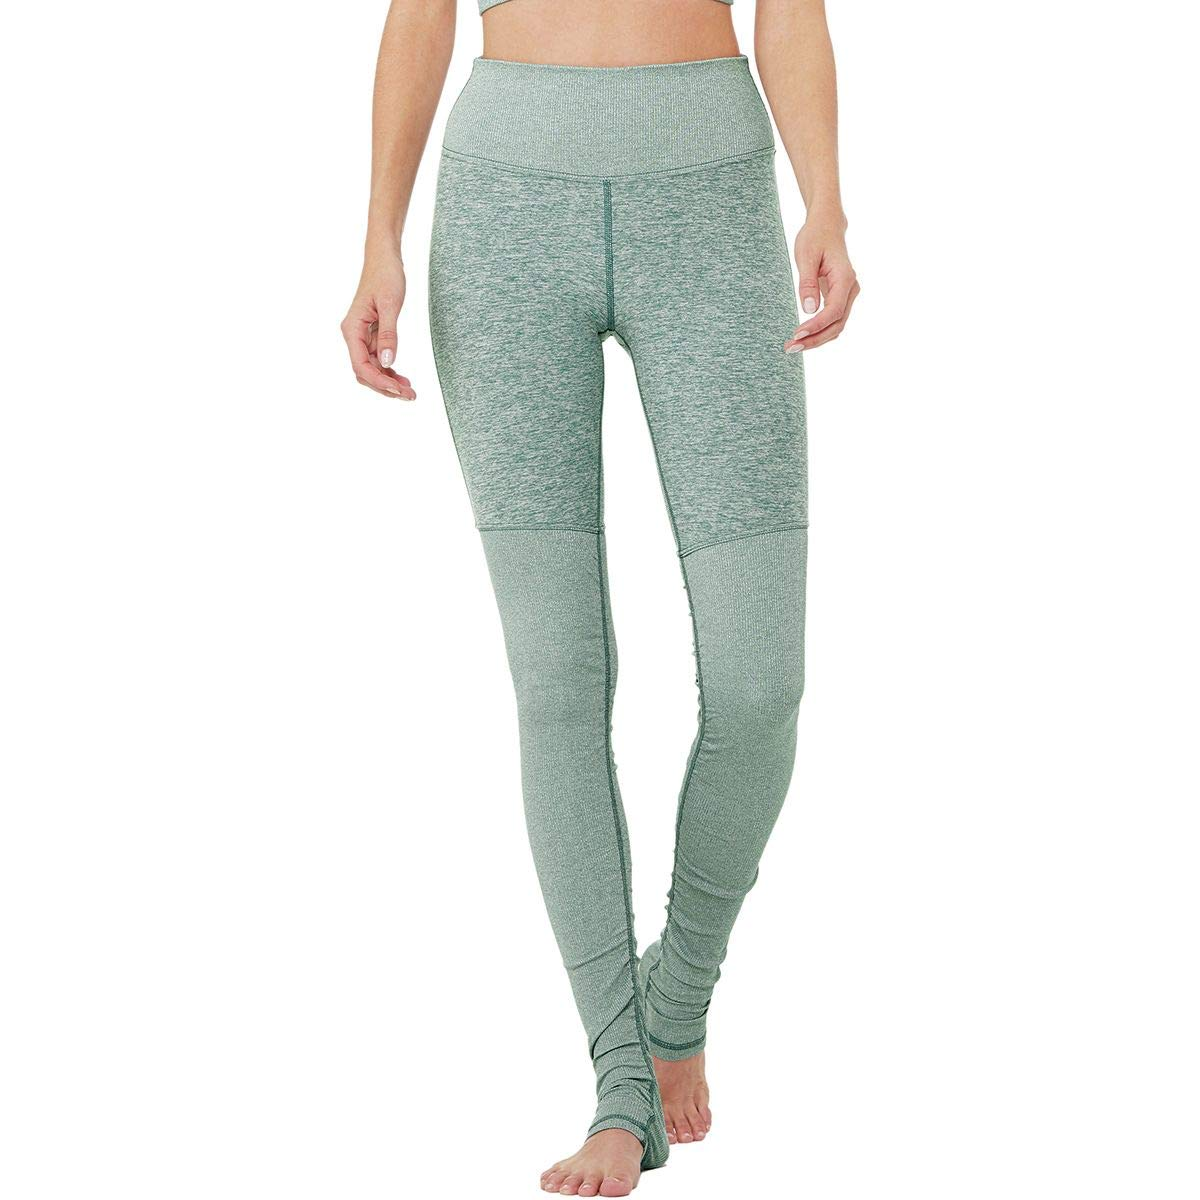 Alo Yoga High-Waisted Alosoft Goddess Legging - Women's Seagrass Heather/Seagrass Heather, XS